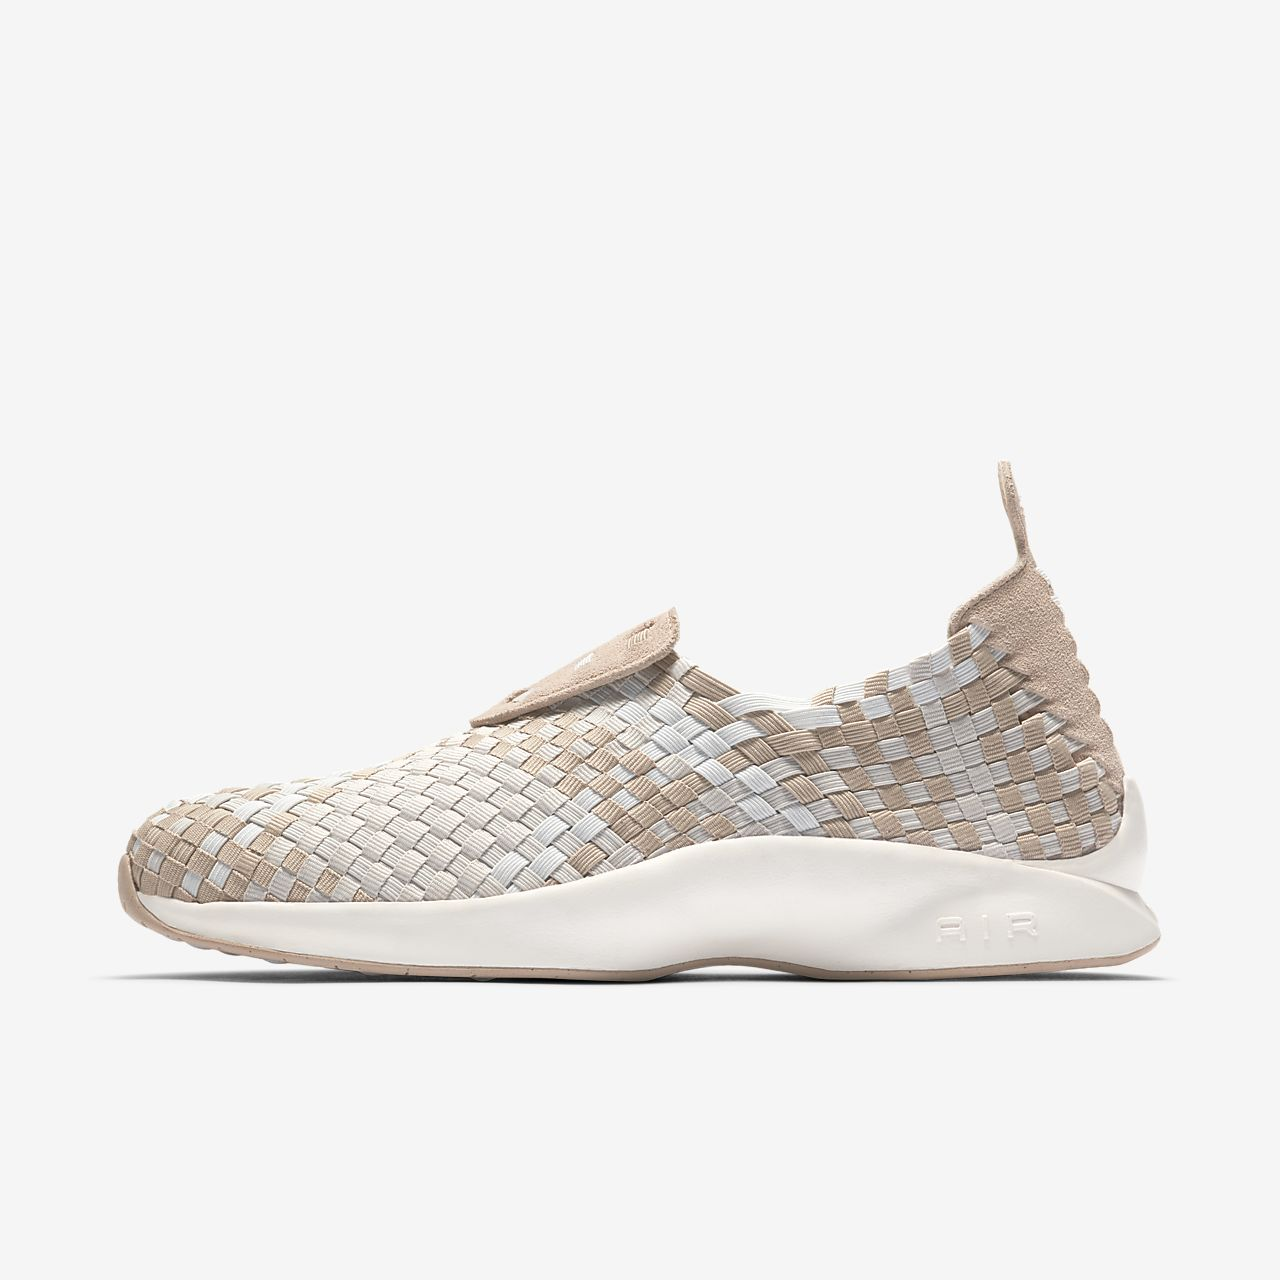 sale retailer 71c64 3f3af Chaussure Nike Air Woven pour Homme